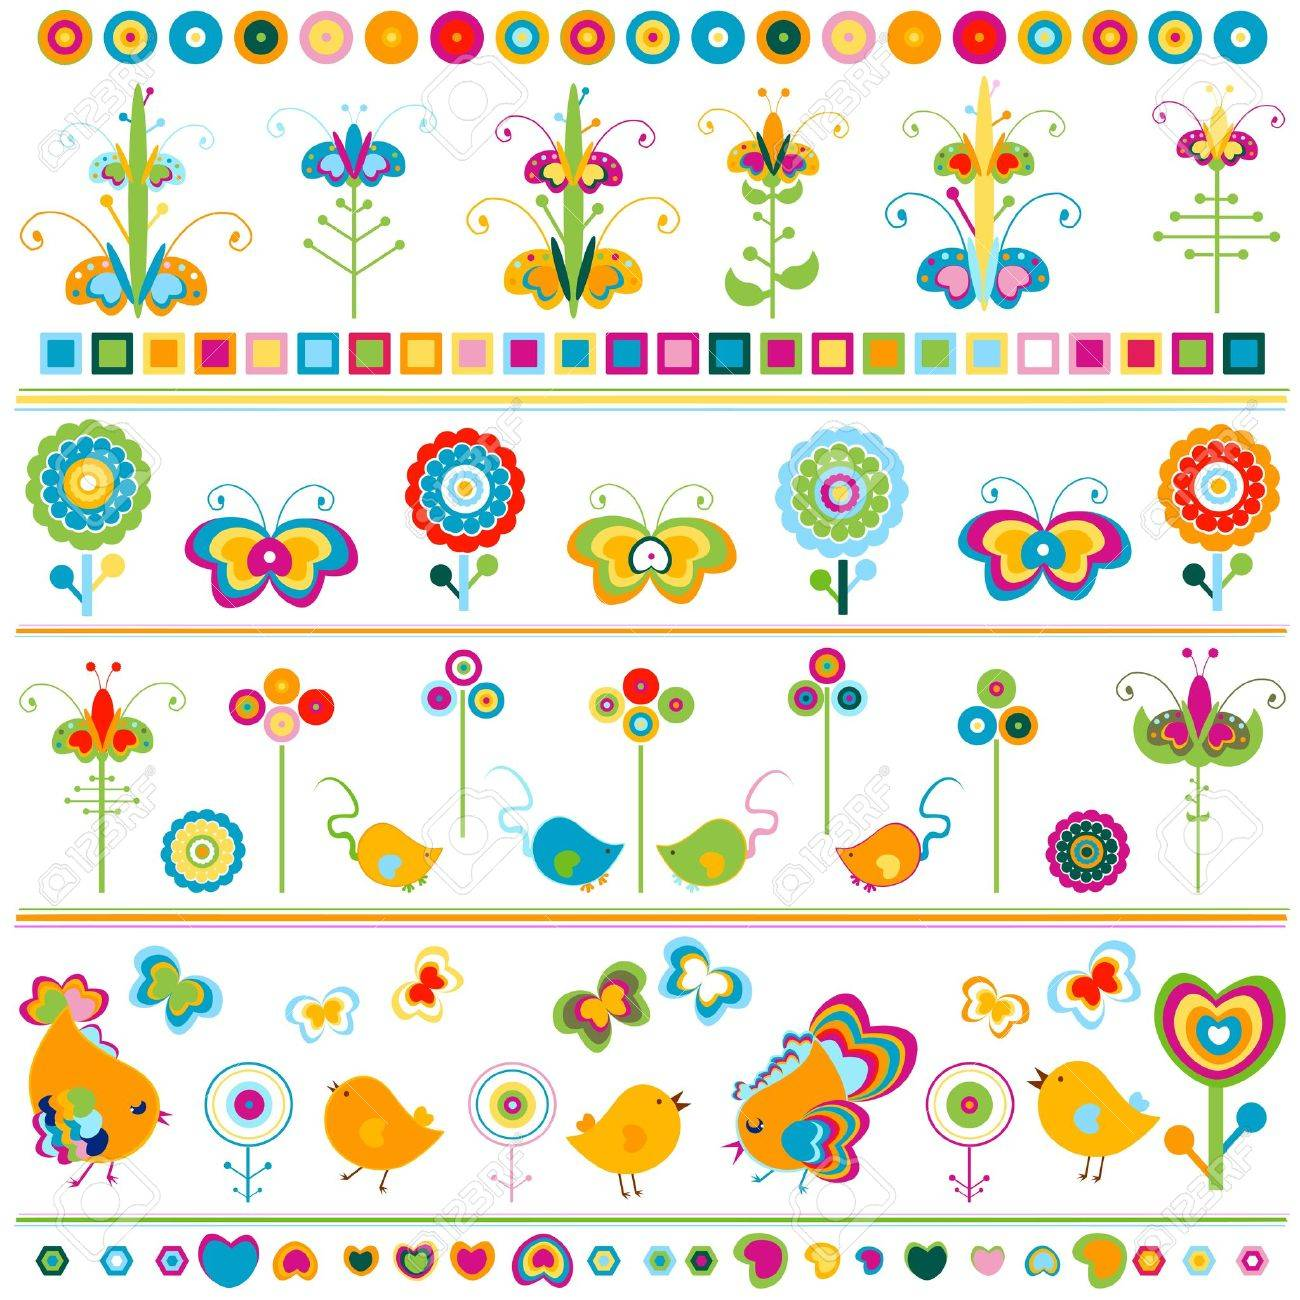 birds, butterflies, flowers etc borders, cute  colorful elements Stock Vector - 20197708